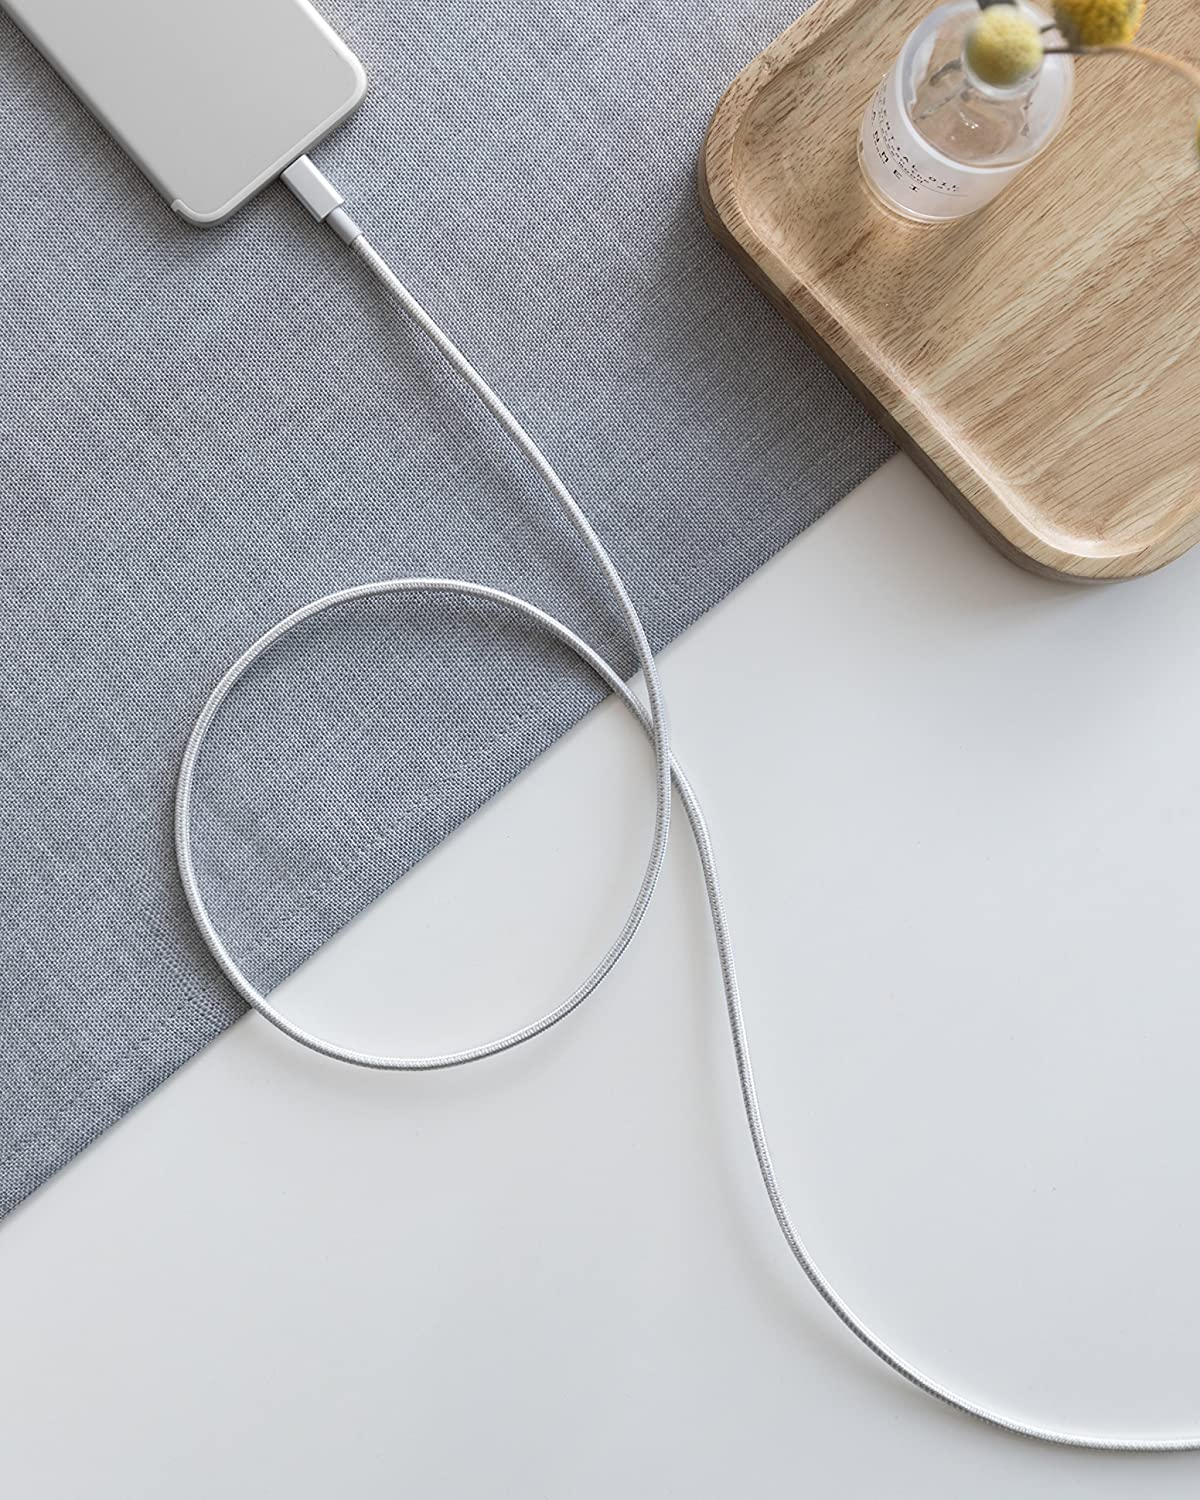 New Nylon USB-C to Lightning Cable